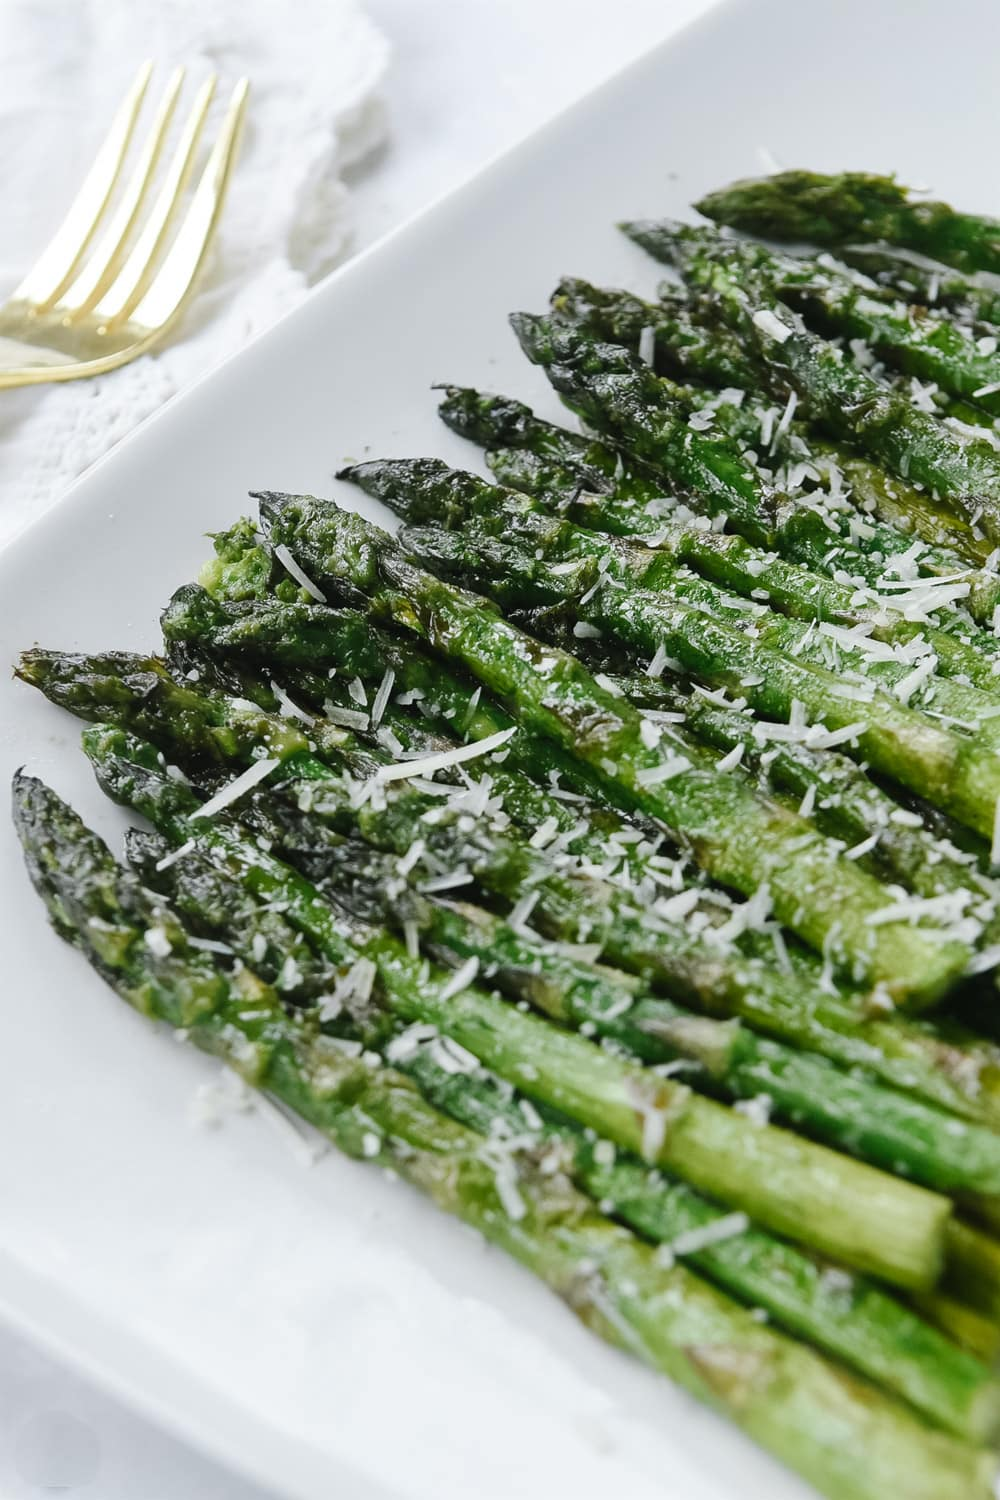 Grilled asparagus on a platter